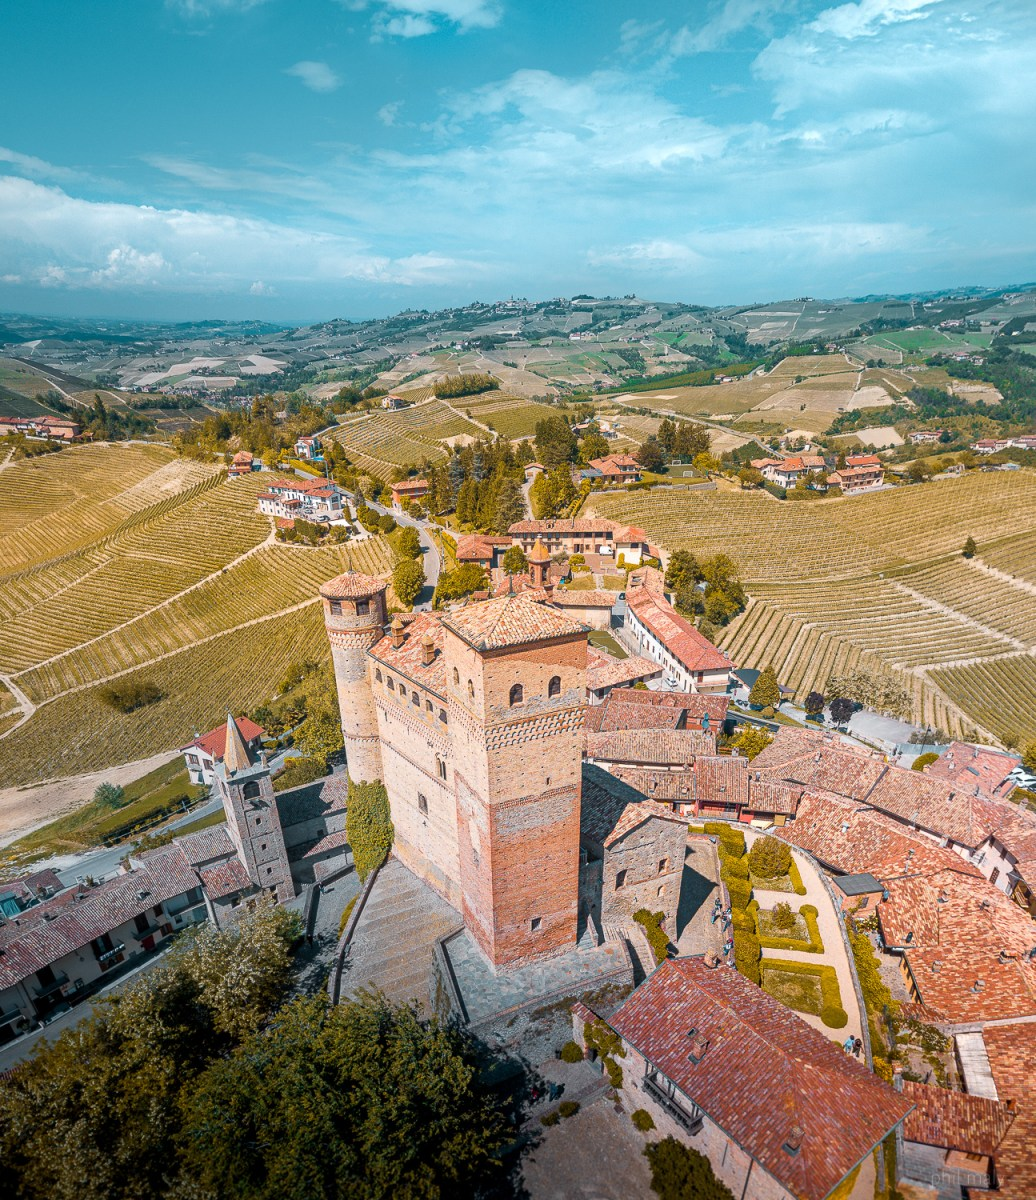 Drone shot of the Castello di Serralunga d'Alba with its red brick